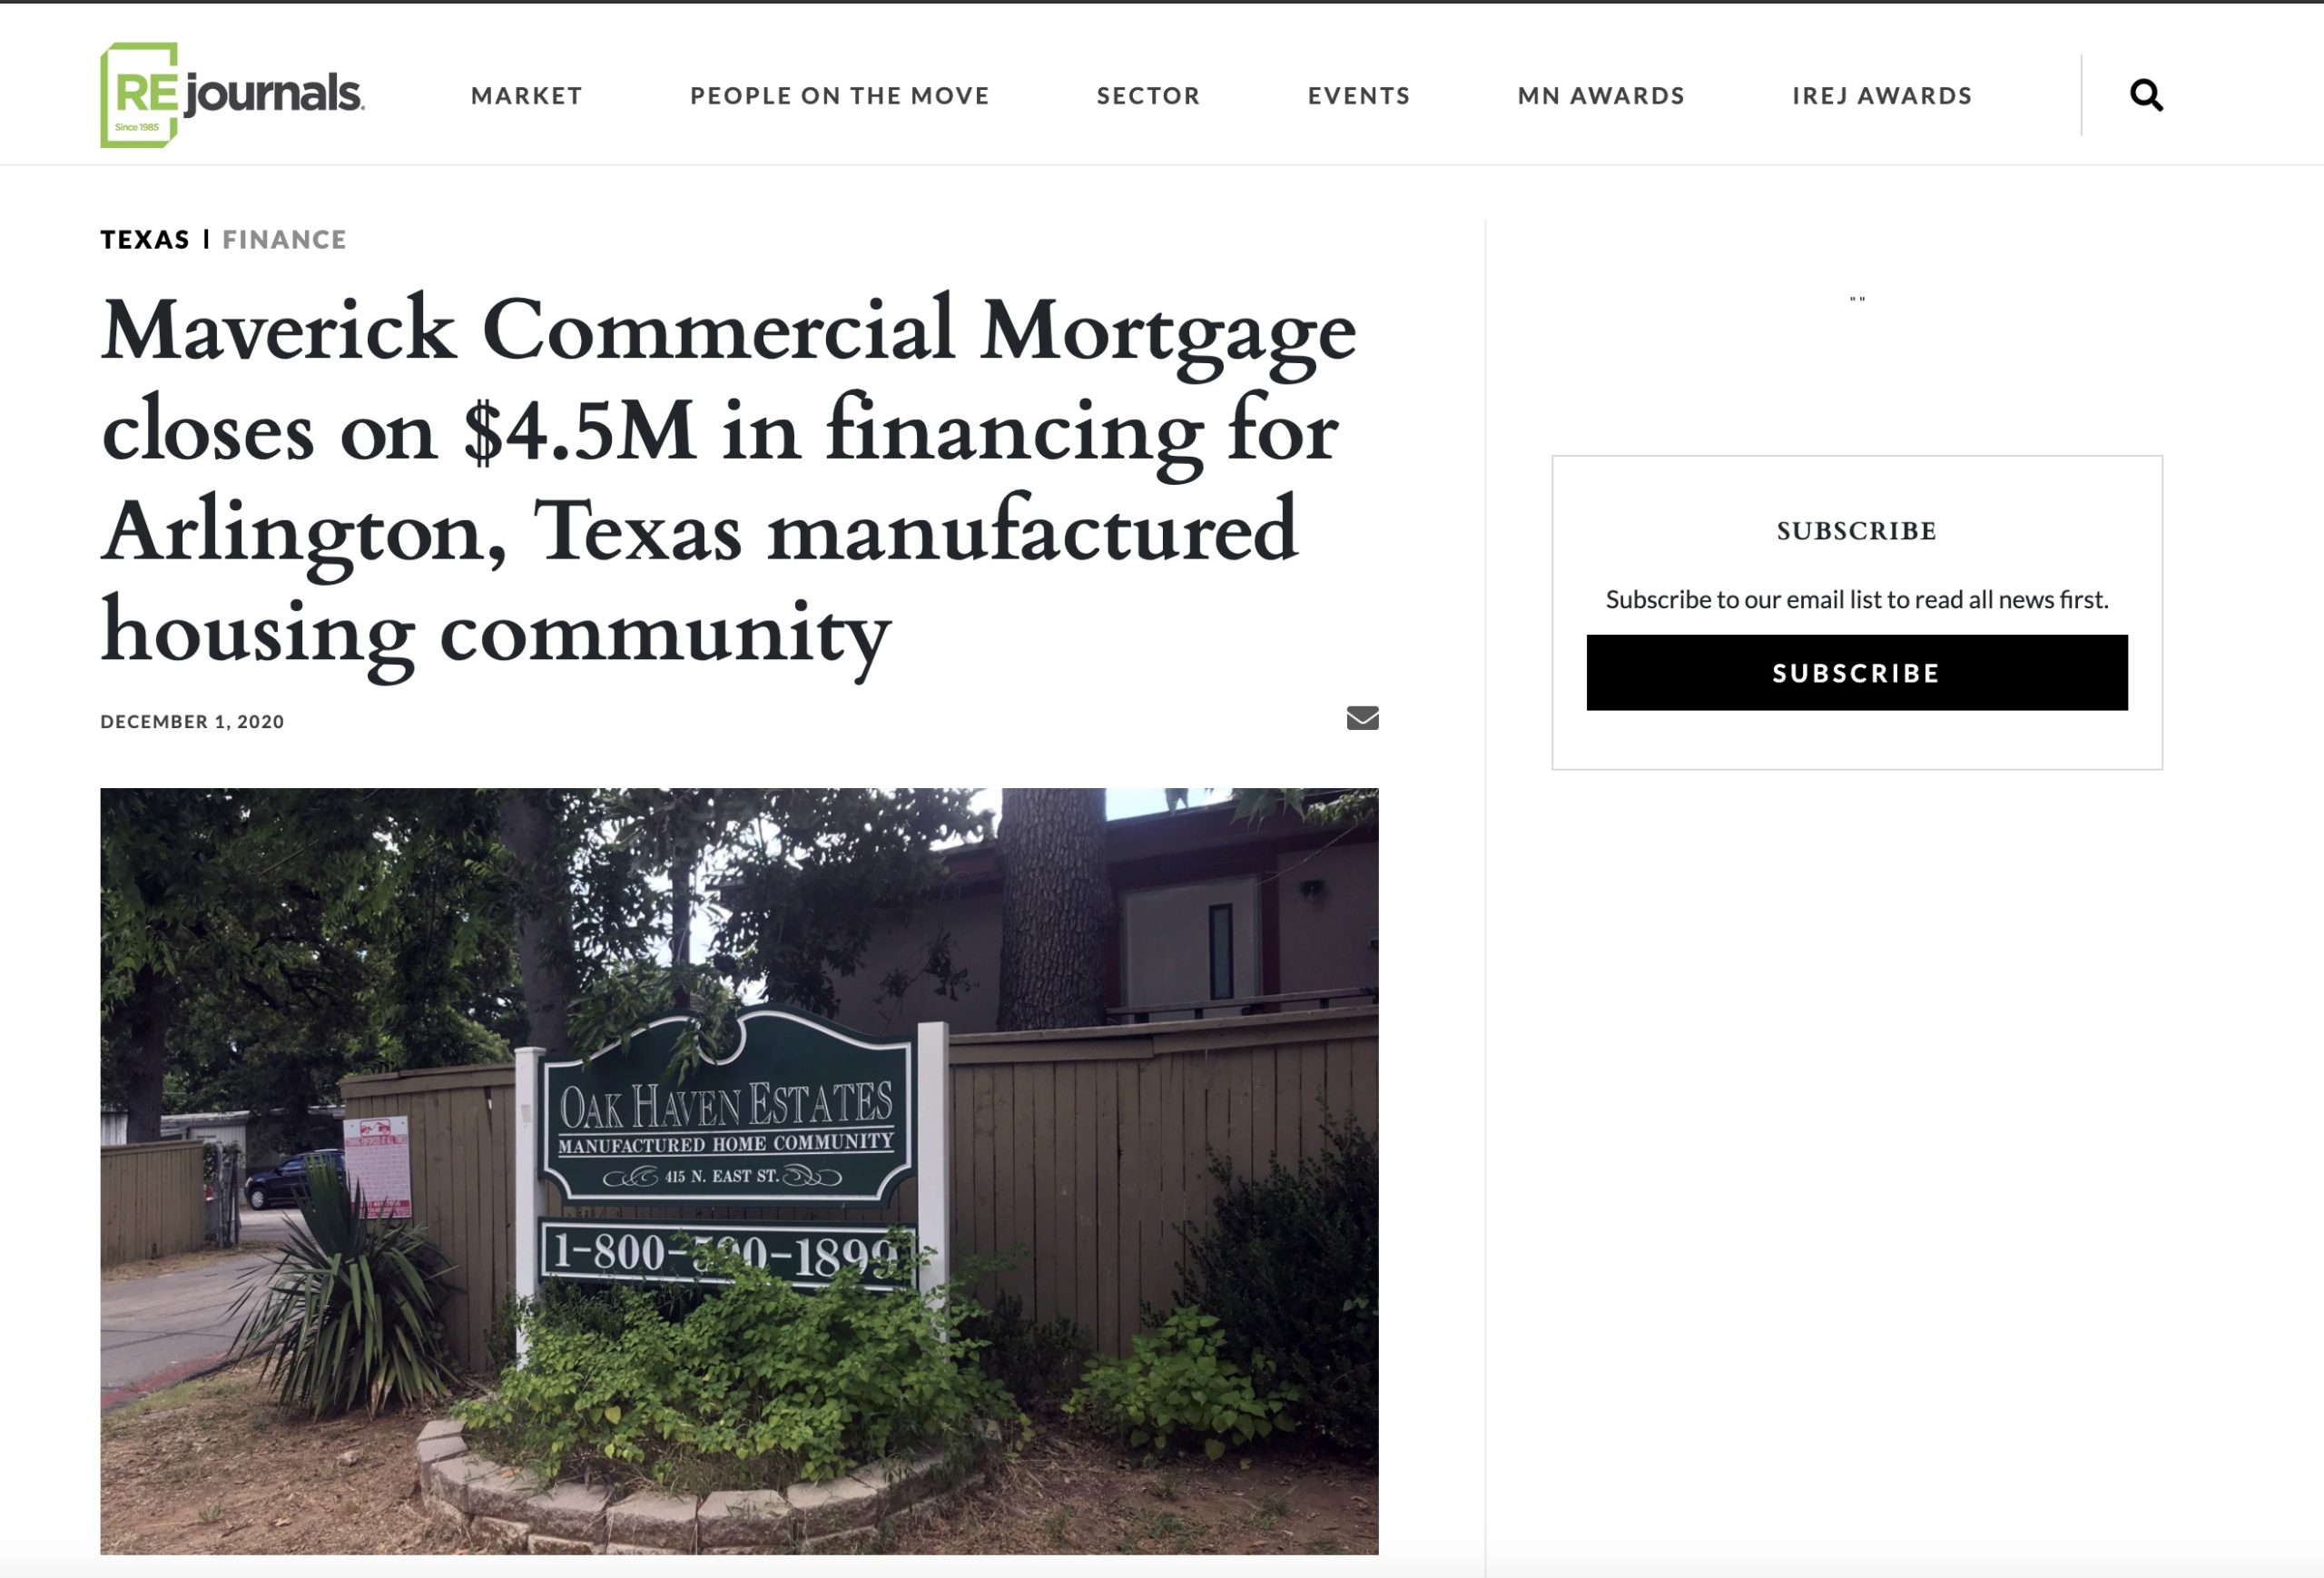 Maverick Commercial Mortgage closes on $4.5M in financing for Arlington, Texas manufactured housing community